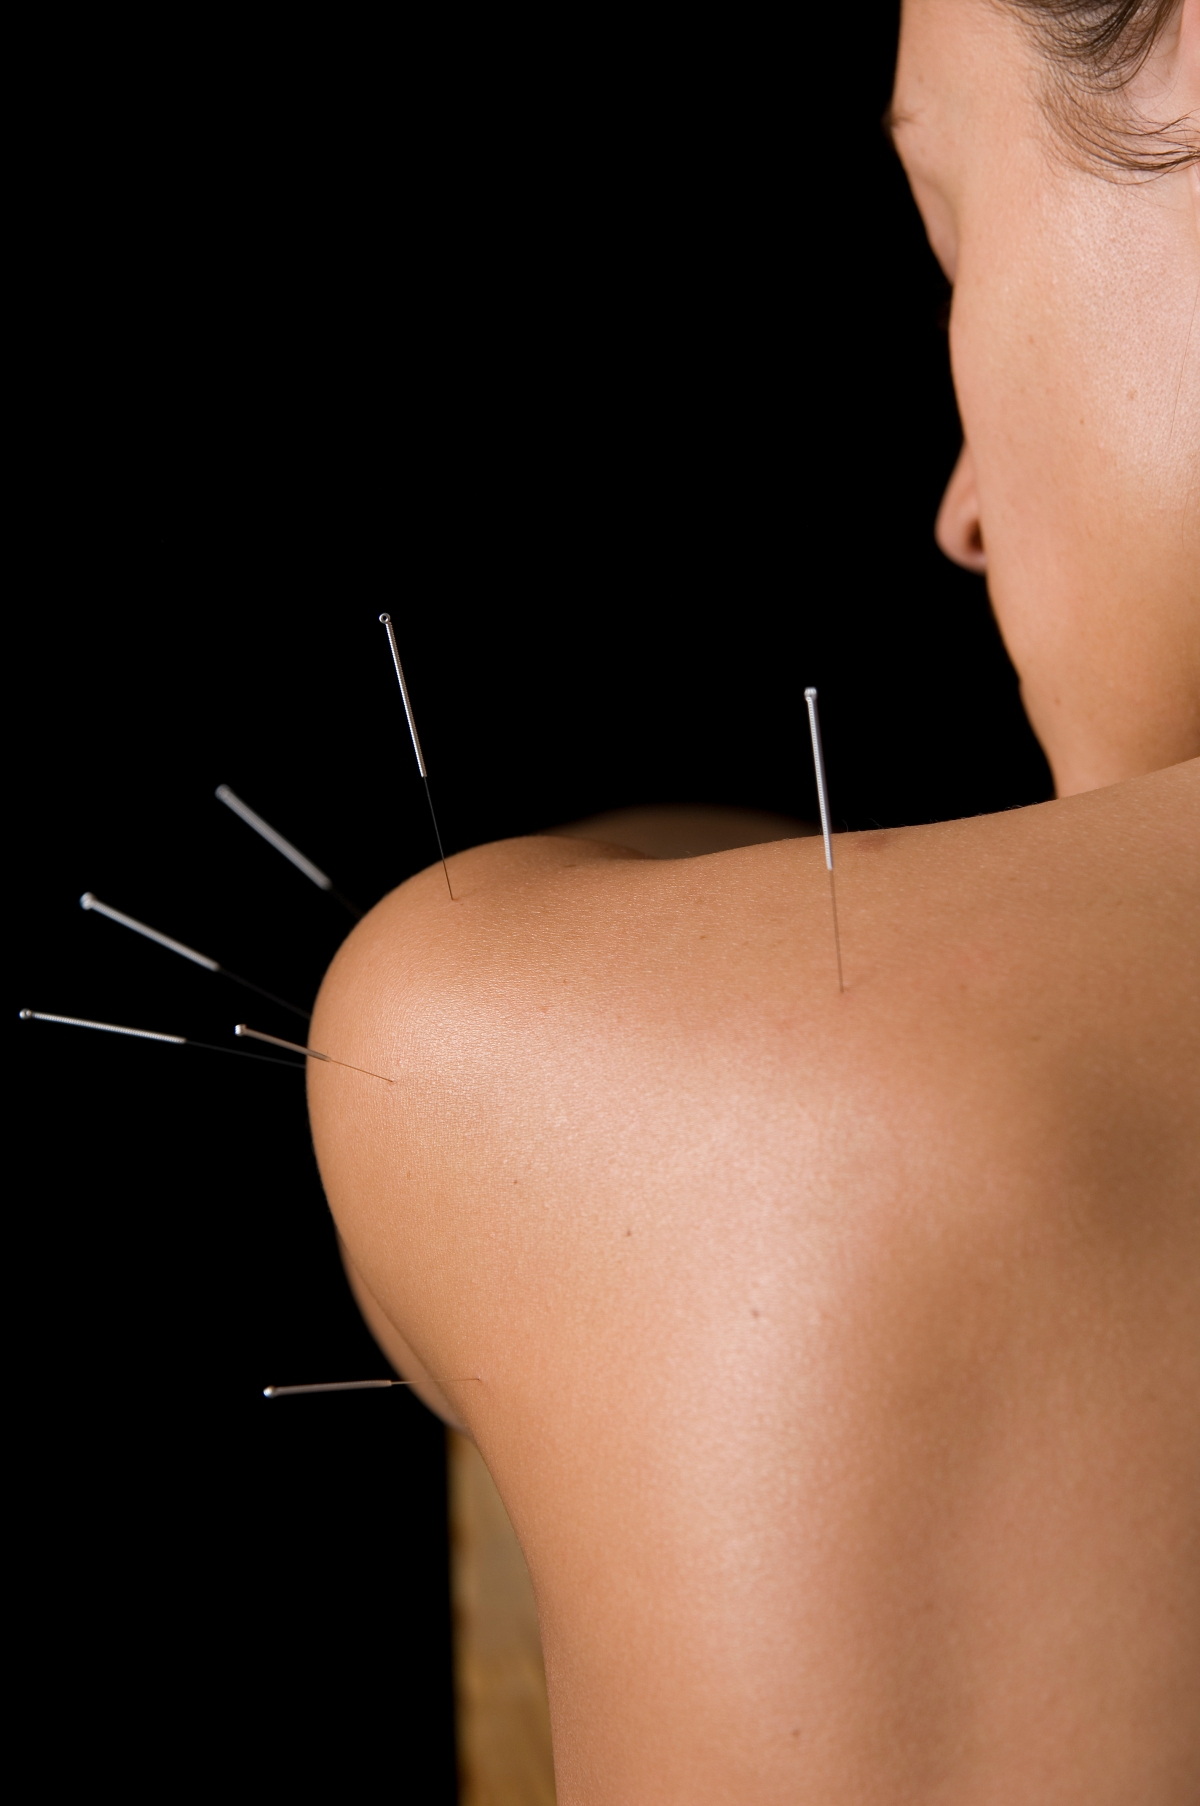 Acupuncture – what isit?